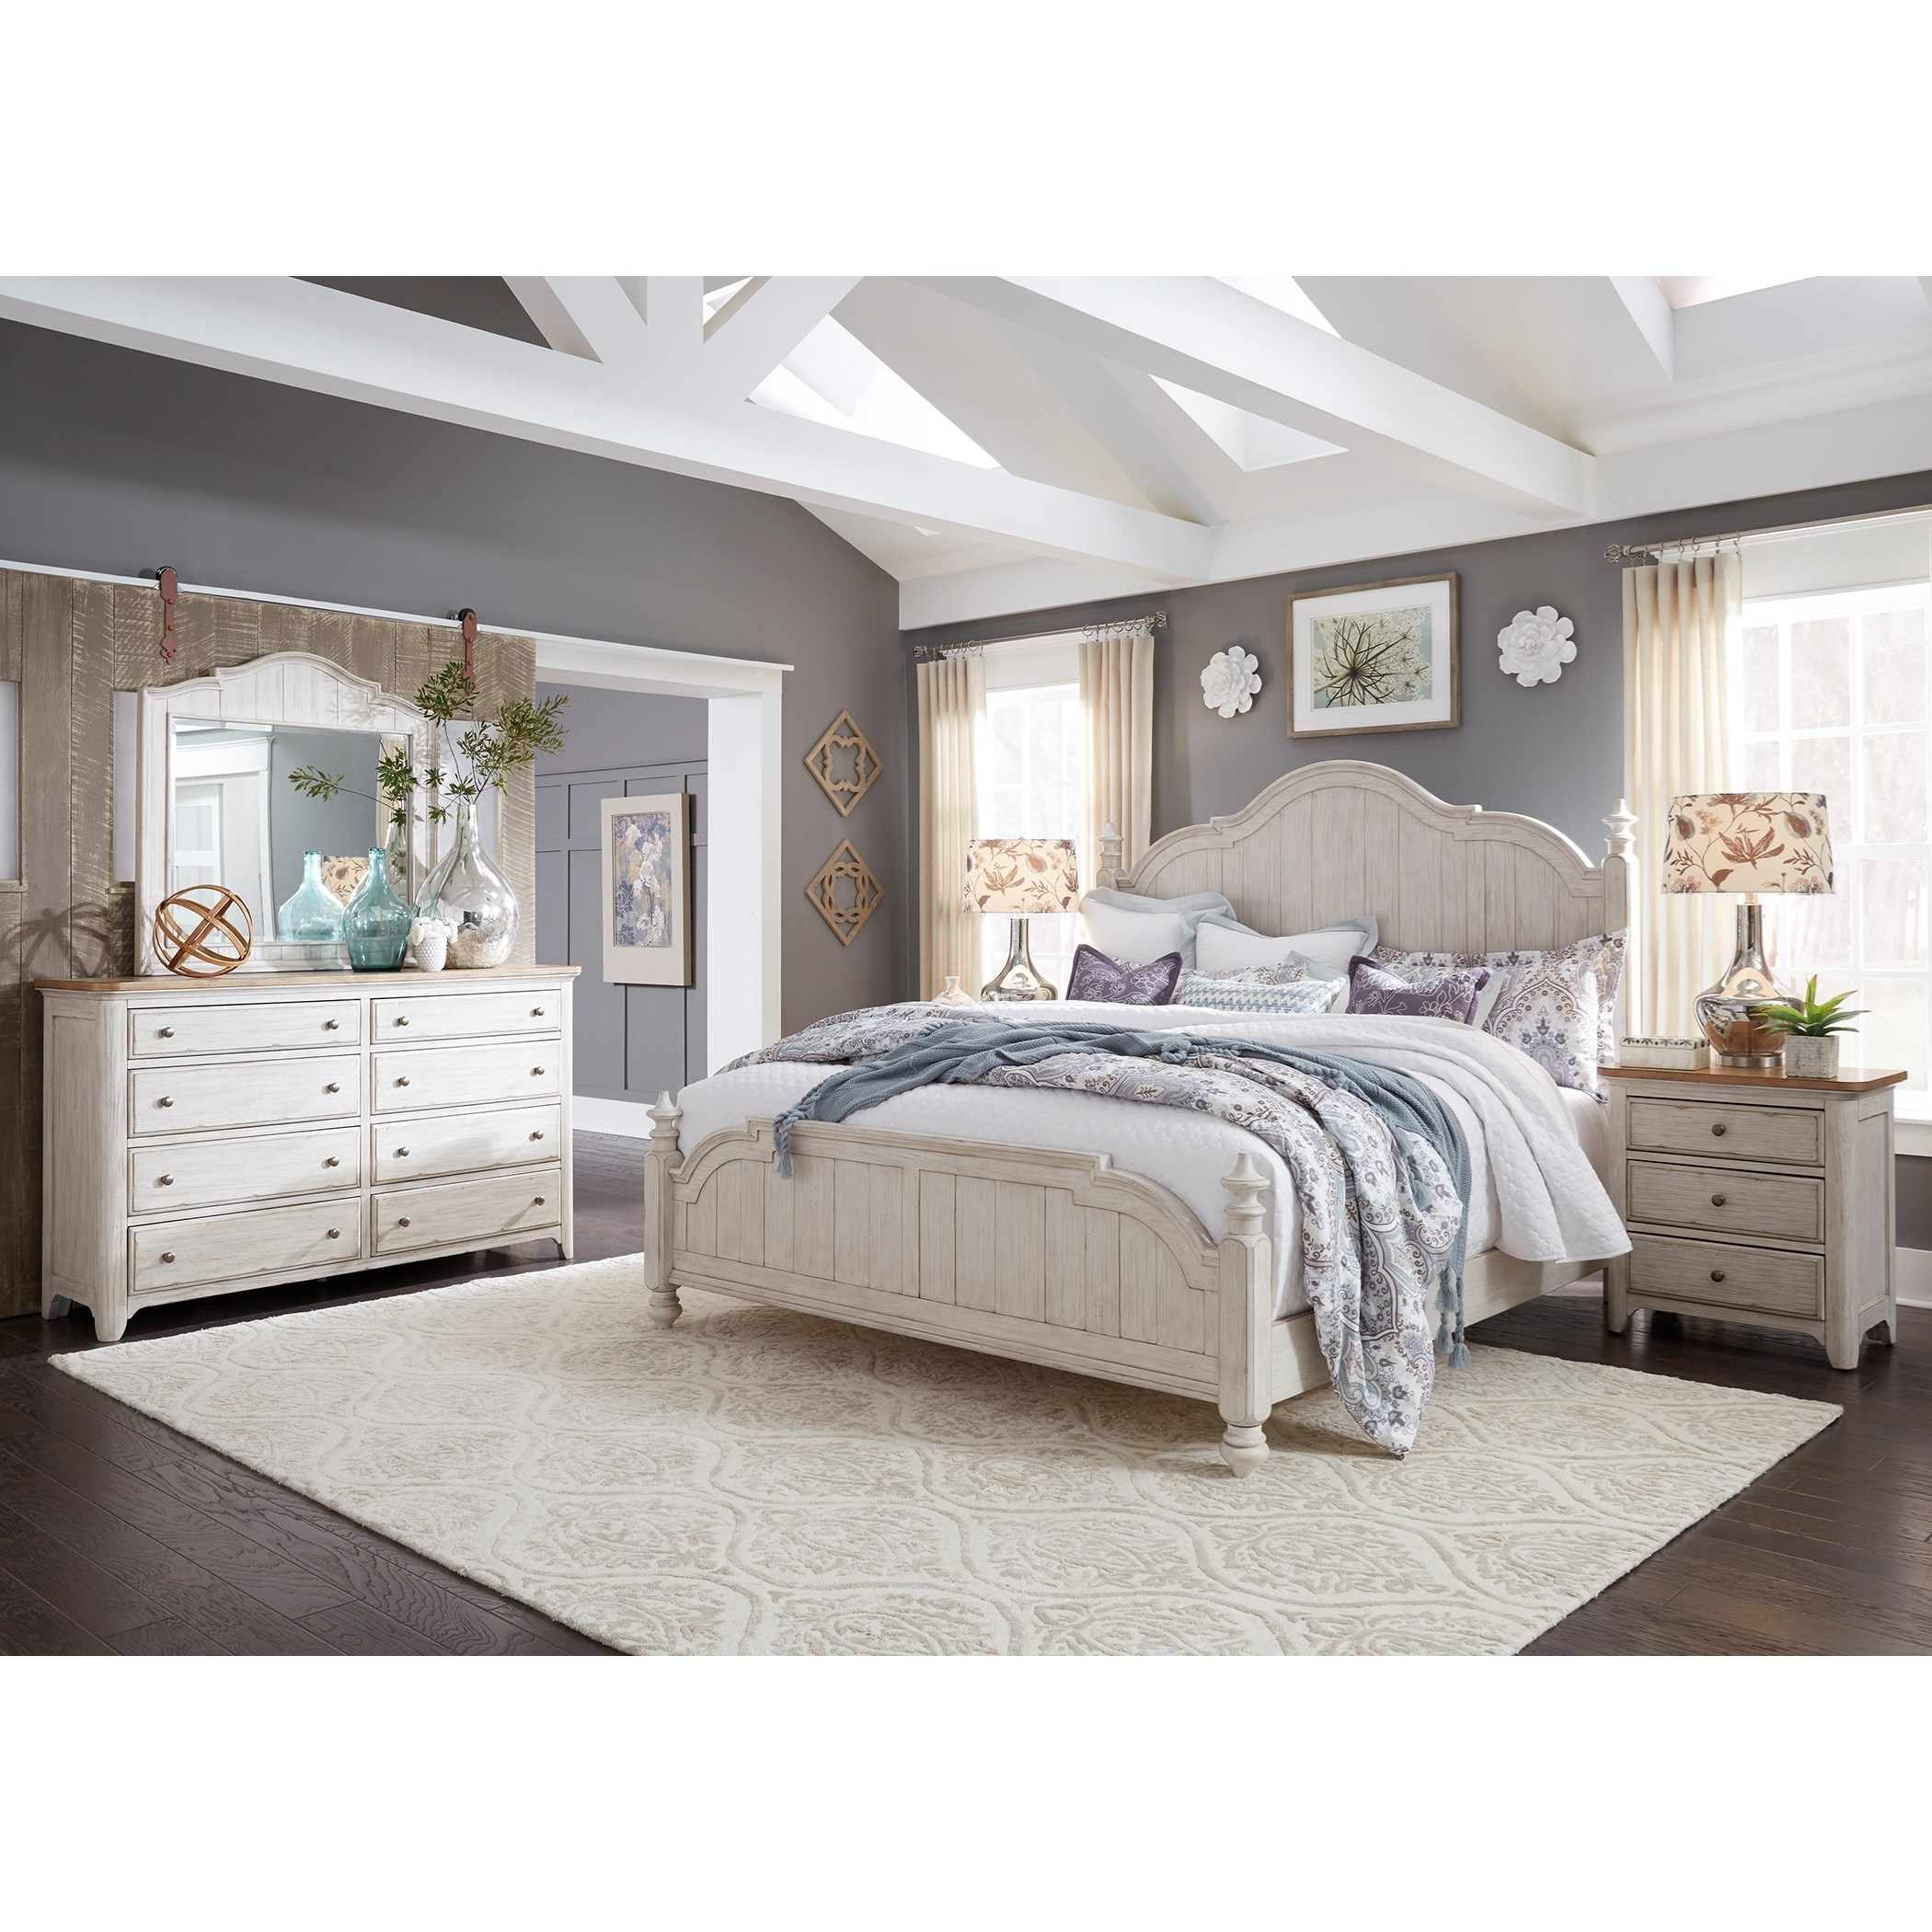 Liberty Furniture Farmhouse Reimagined King Bedroom Group - Item Number: 652-BR-KPSDMN